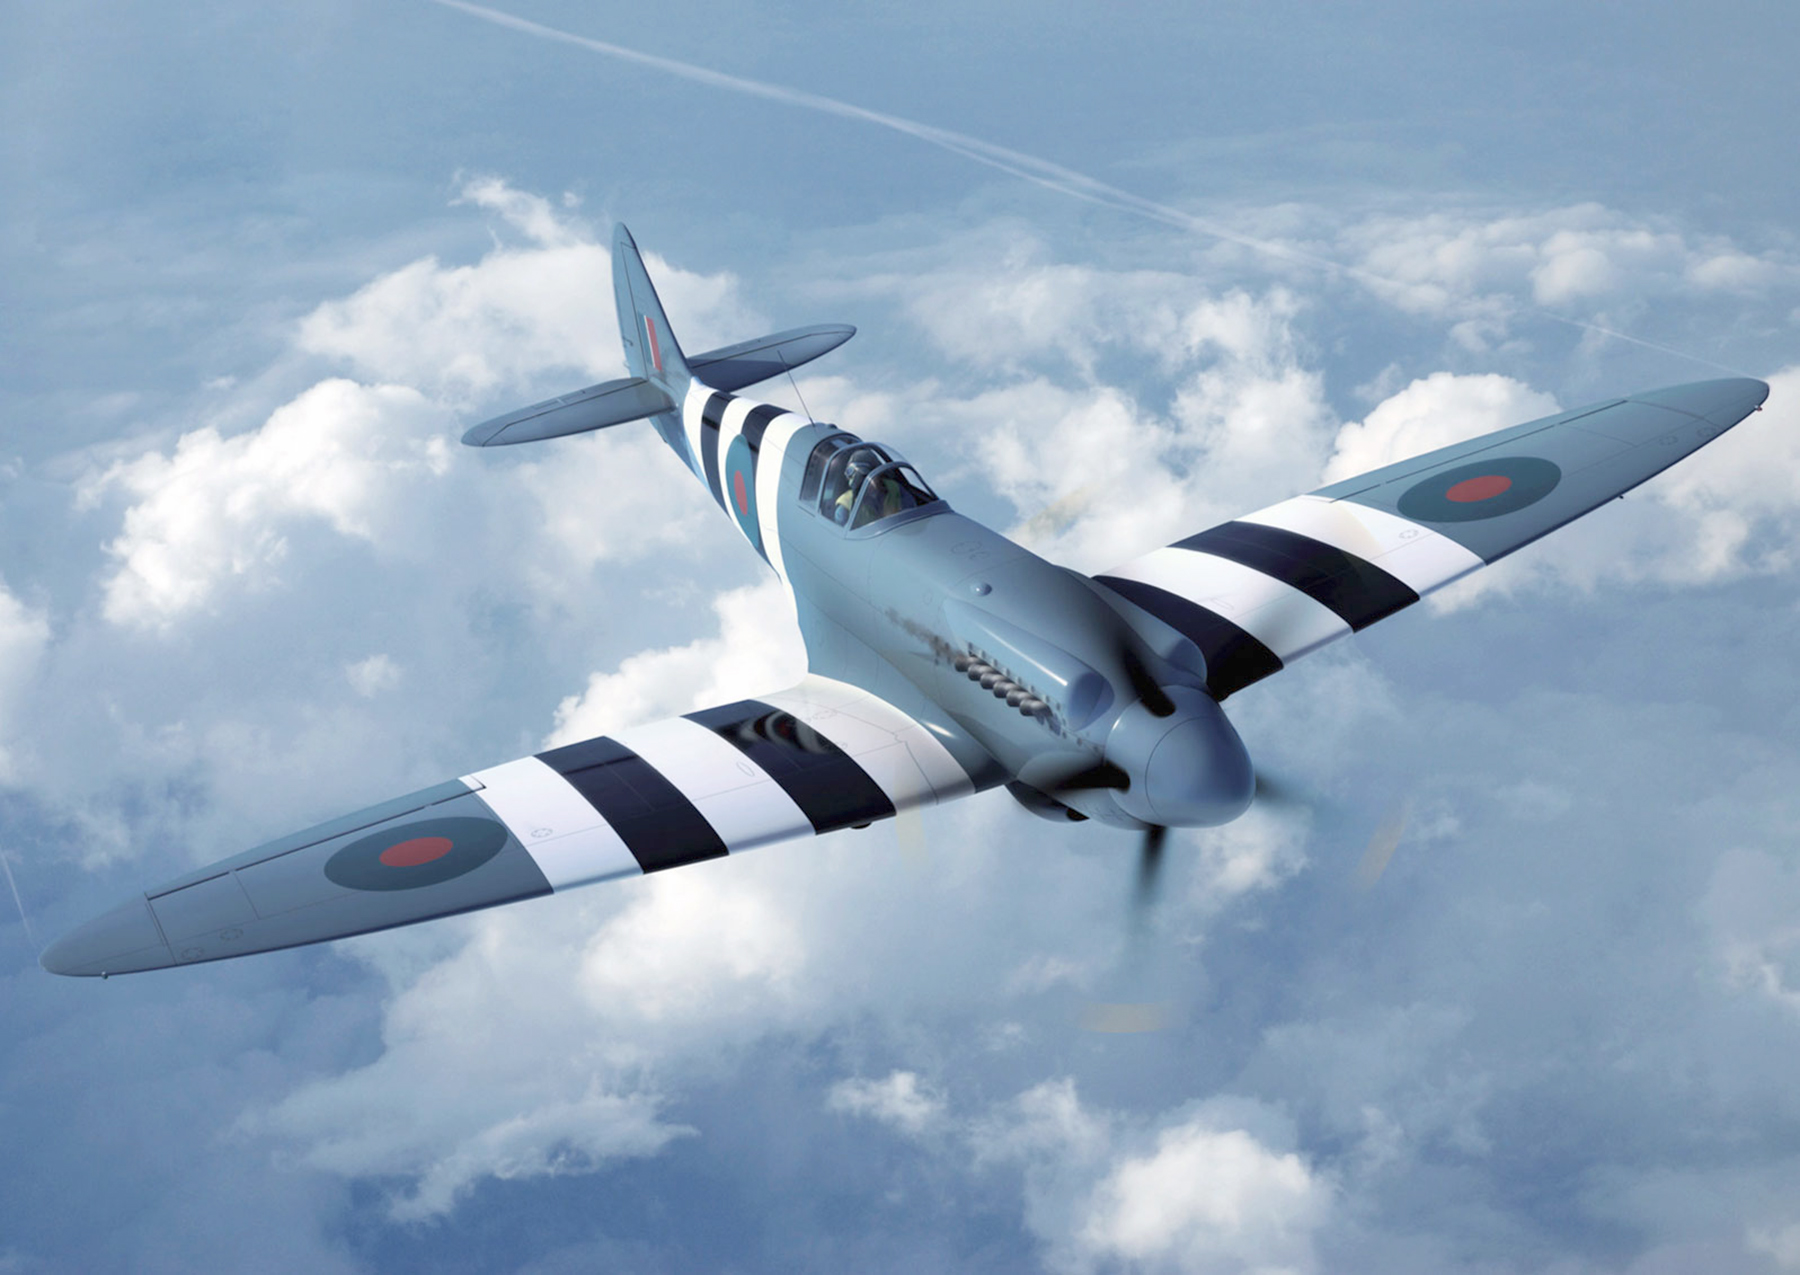 Spitfire PRXIX PM631 marked as RAF 541Sqn during June 1944 01